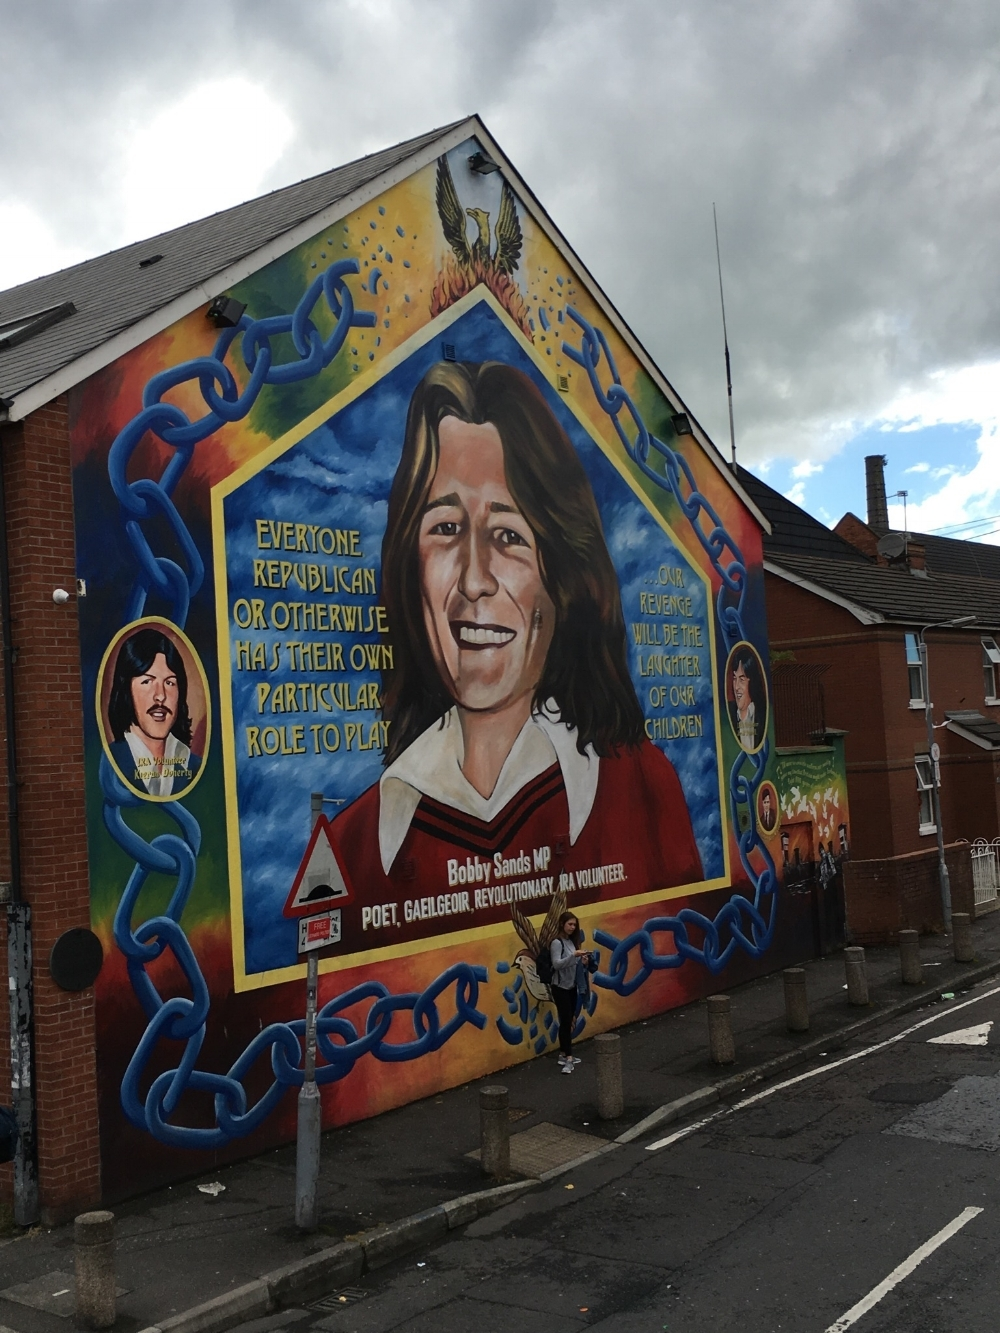 memorial for  bobby sands , one of the IRA prisoners who died in a 1981 hunger strike